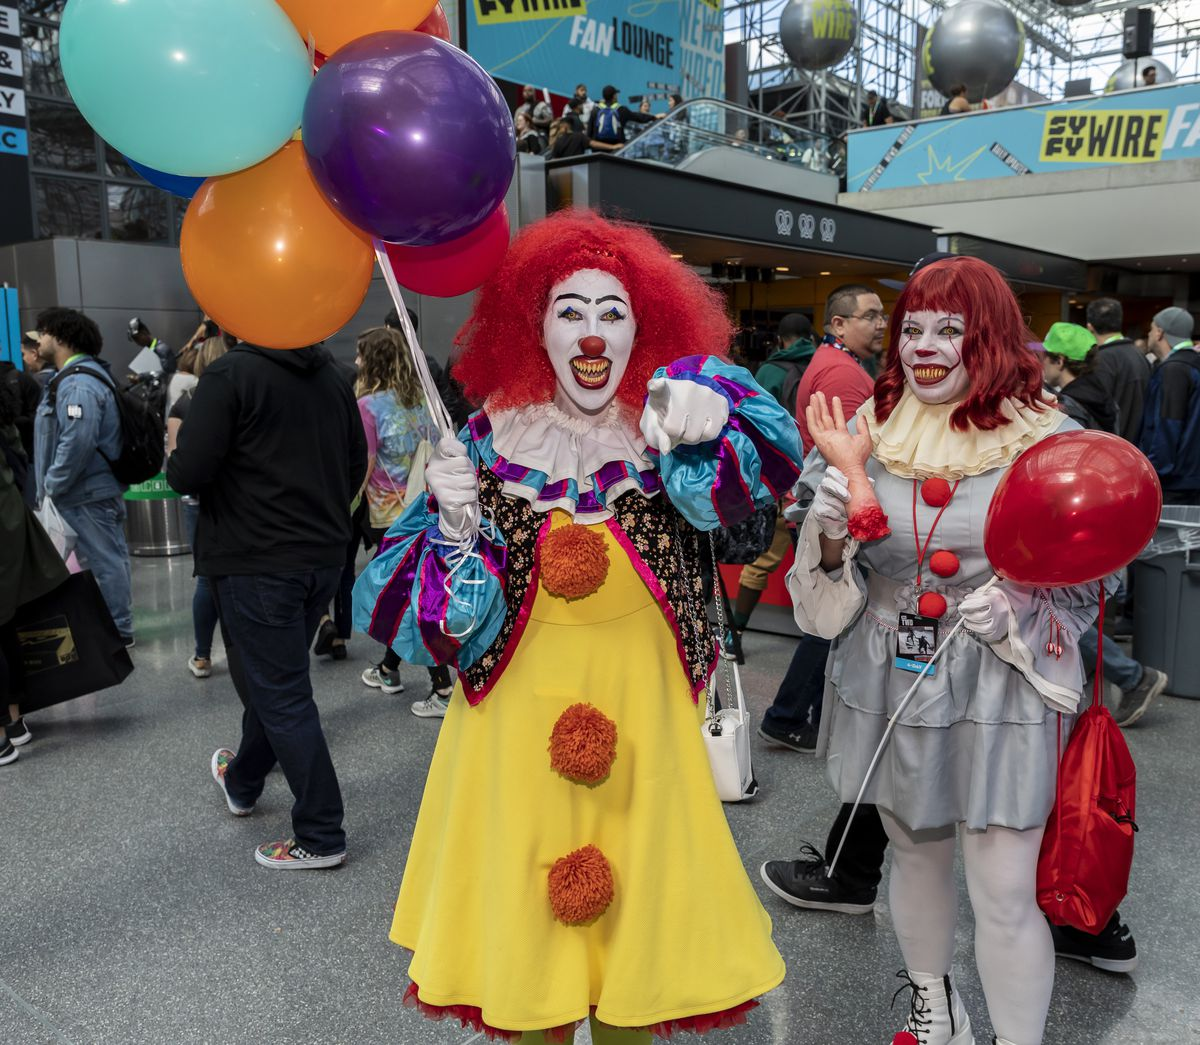 Comic Con attendees pose in the costumes during Comic Con...